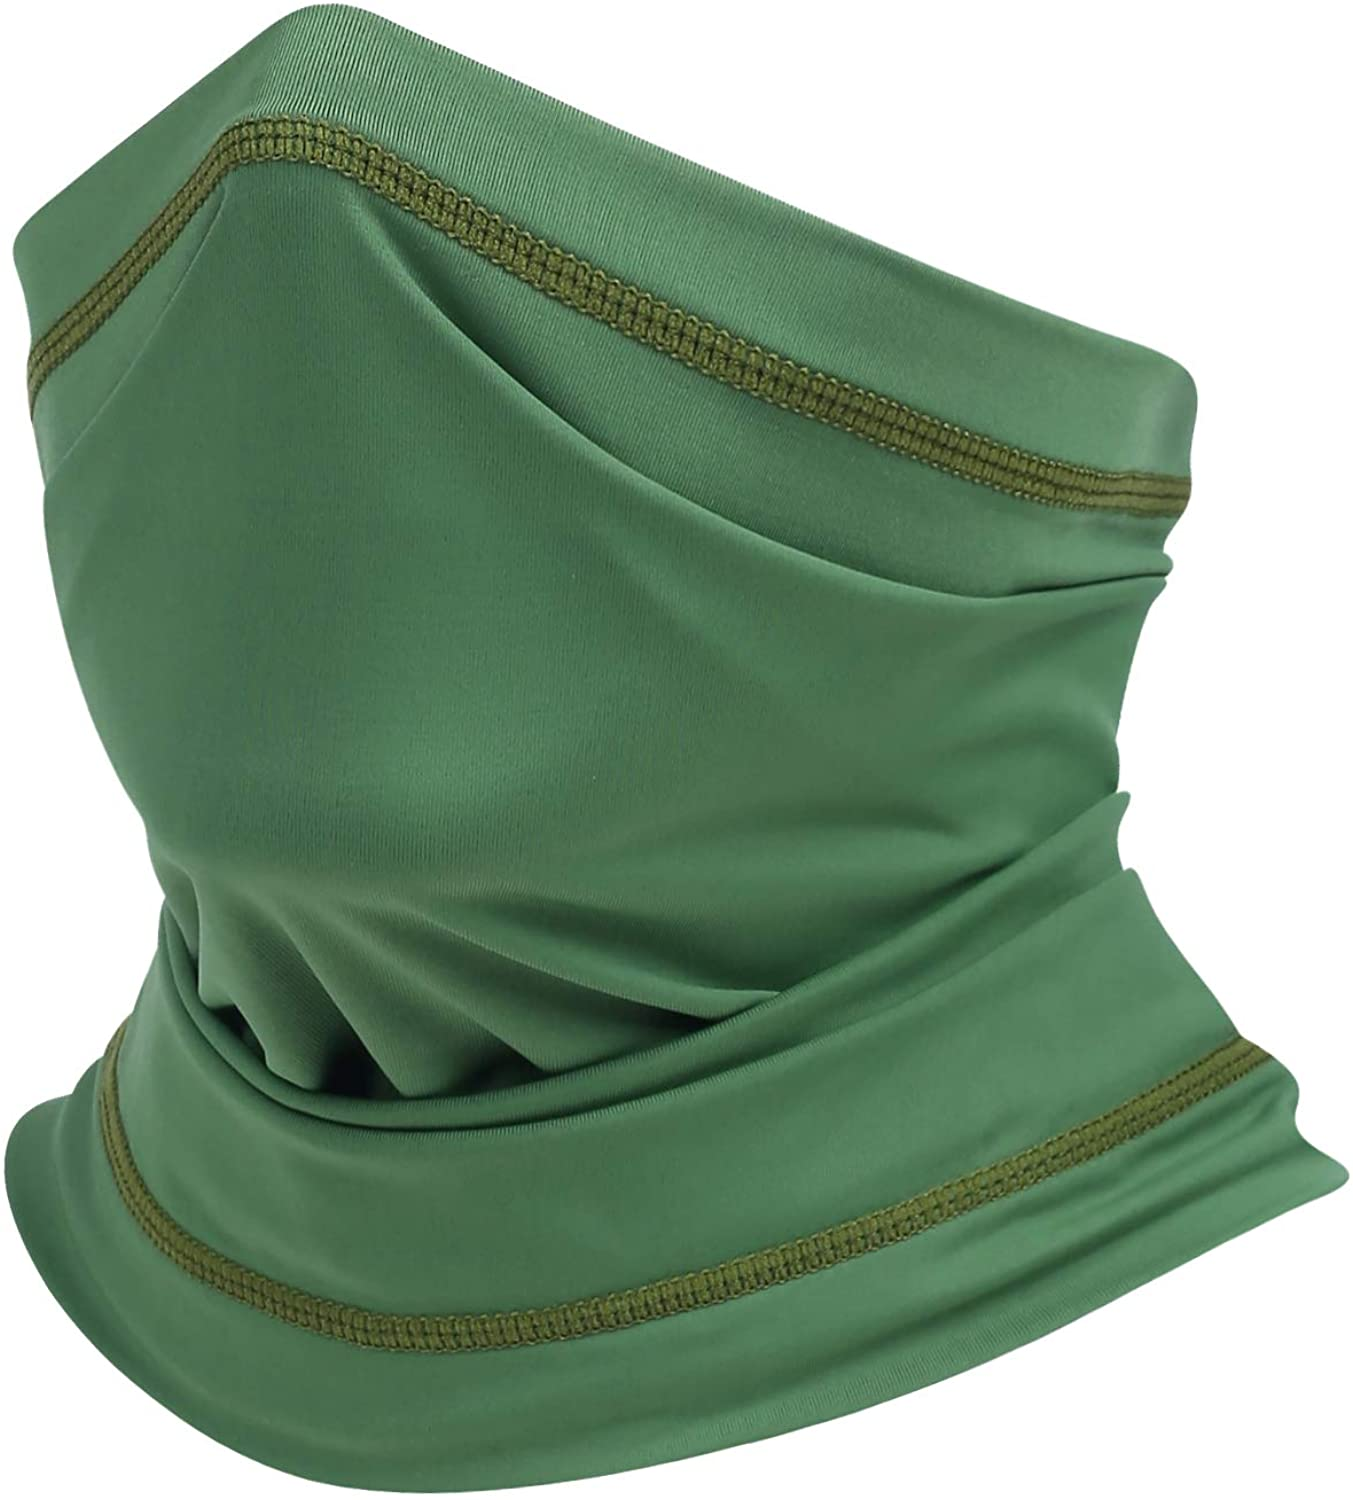 Summer Cooling Face Mask Neck Gaiter Silky Dustproof UV Protective Scarf